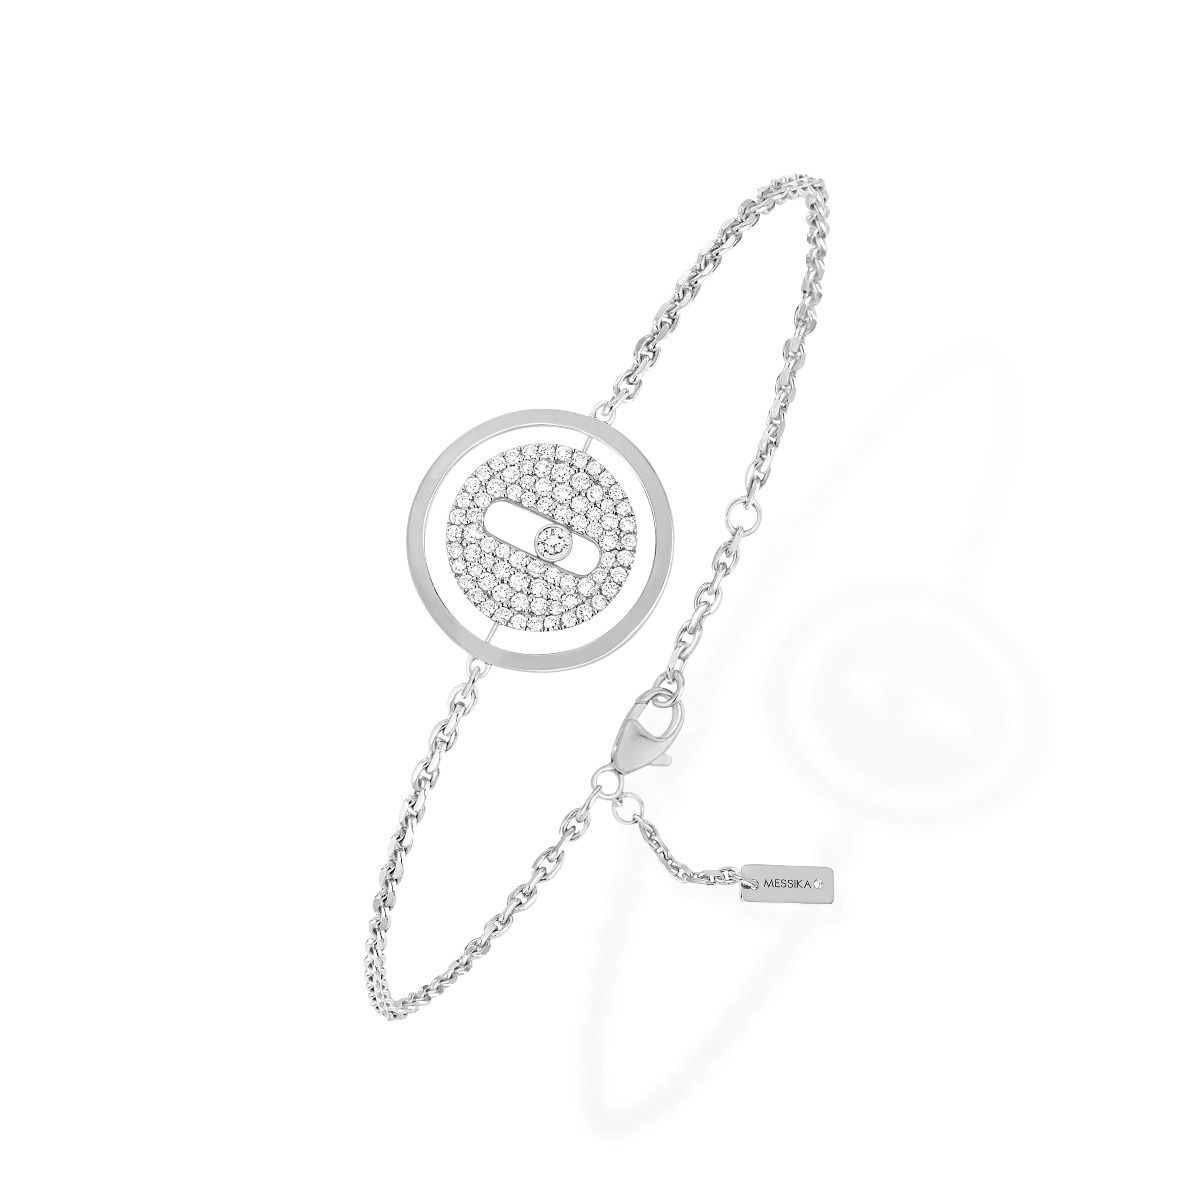 Lucky Move Pavé Pm Bracelet - White Gold